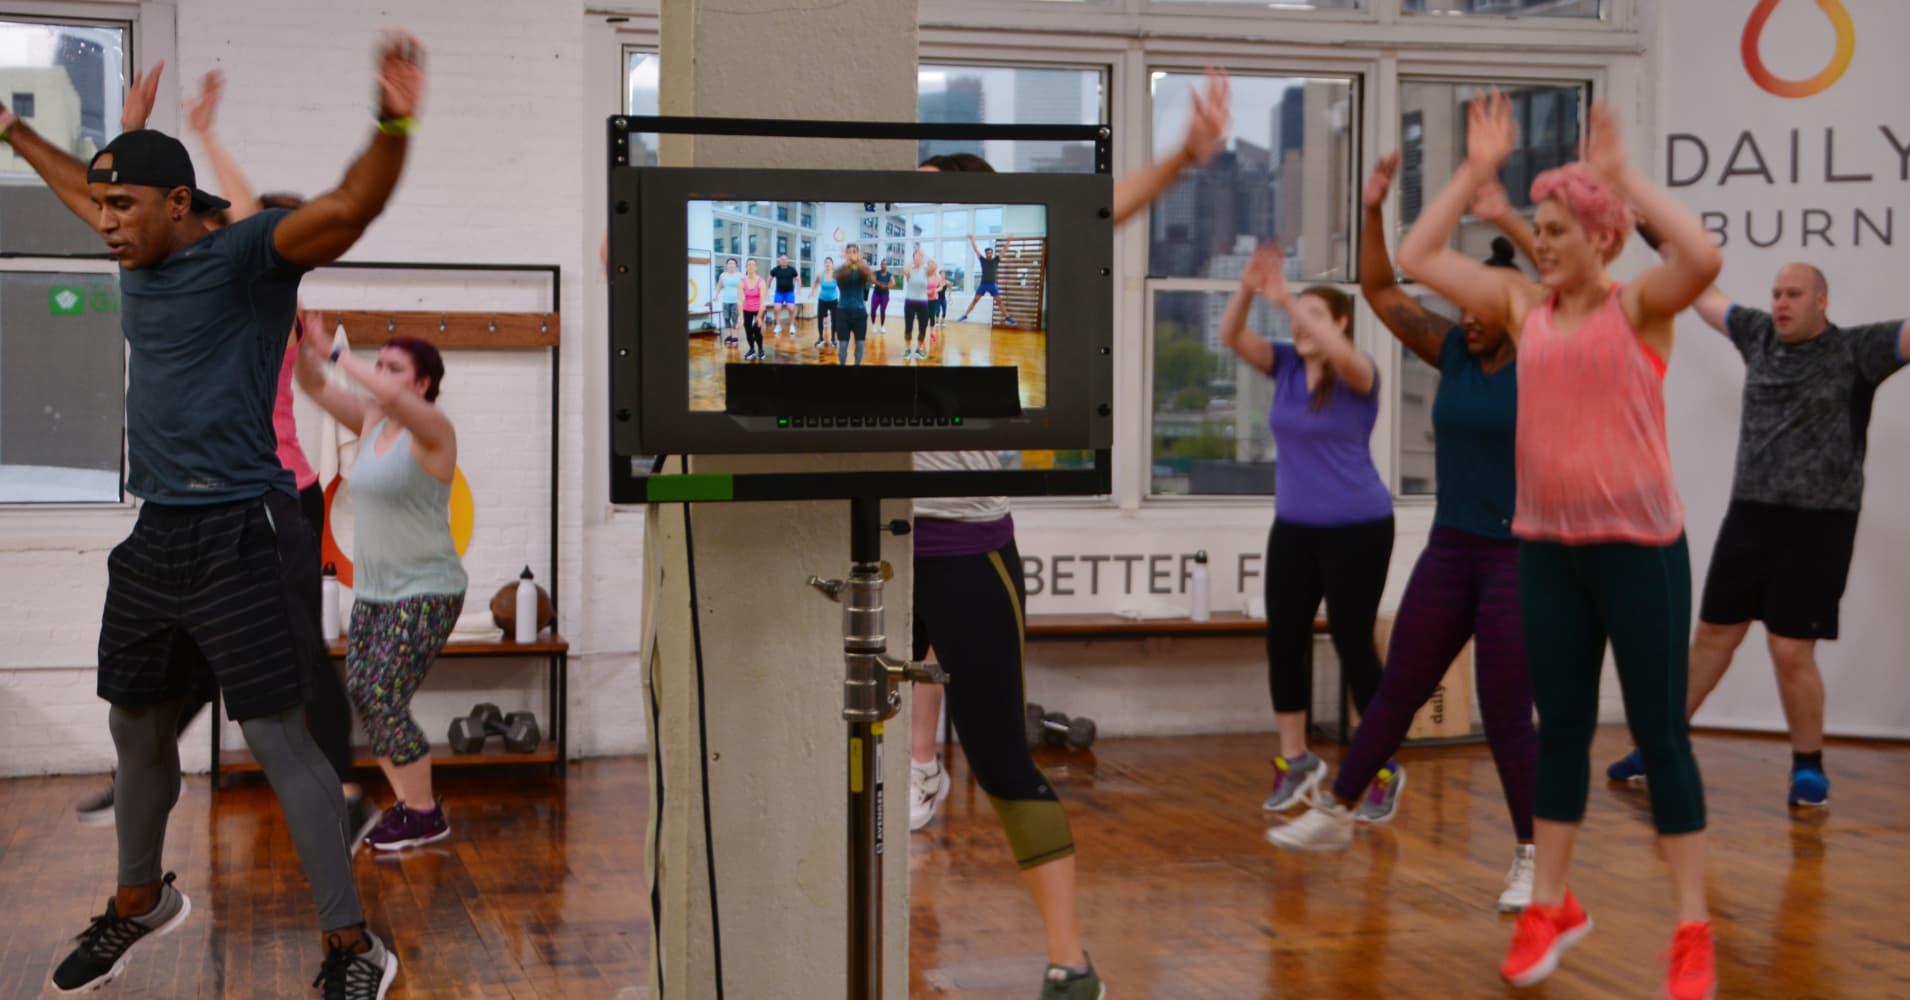 No More Excuses Workout Classes Stream Live To Your Living Room